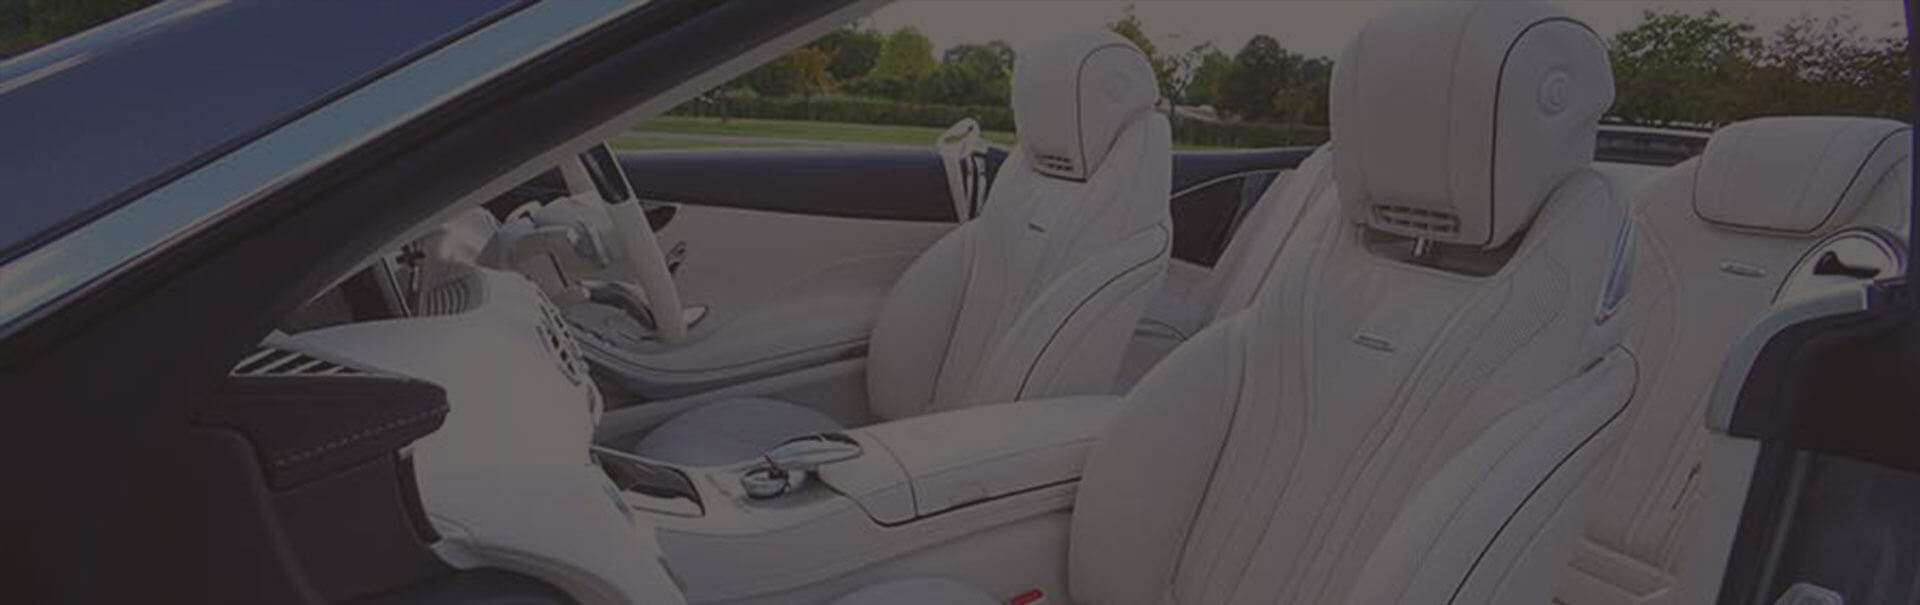 How to solve the problem of car seat design with 3D scanning?